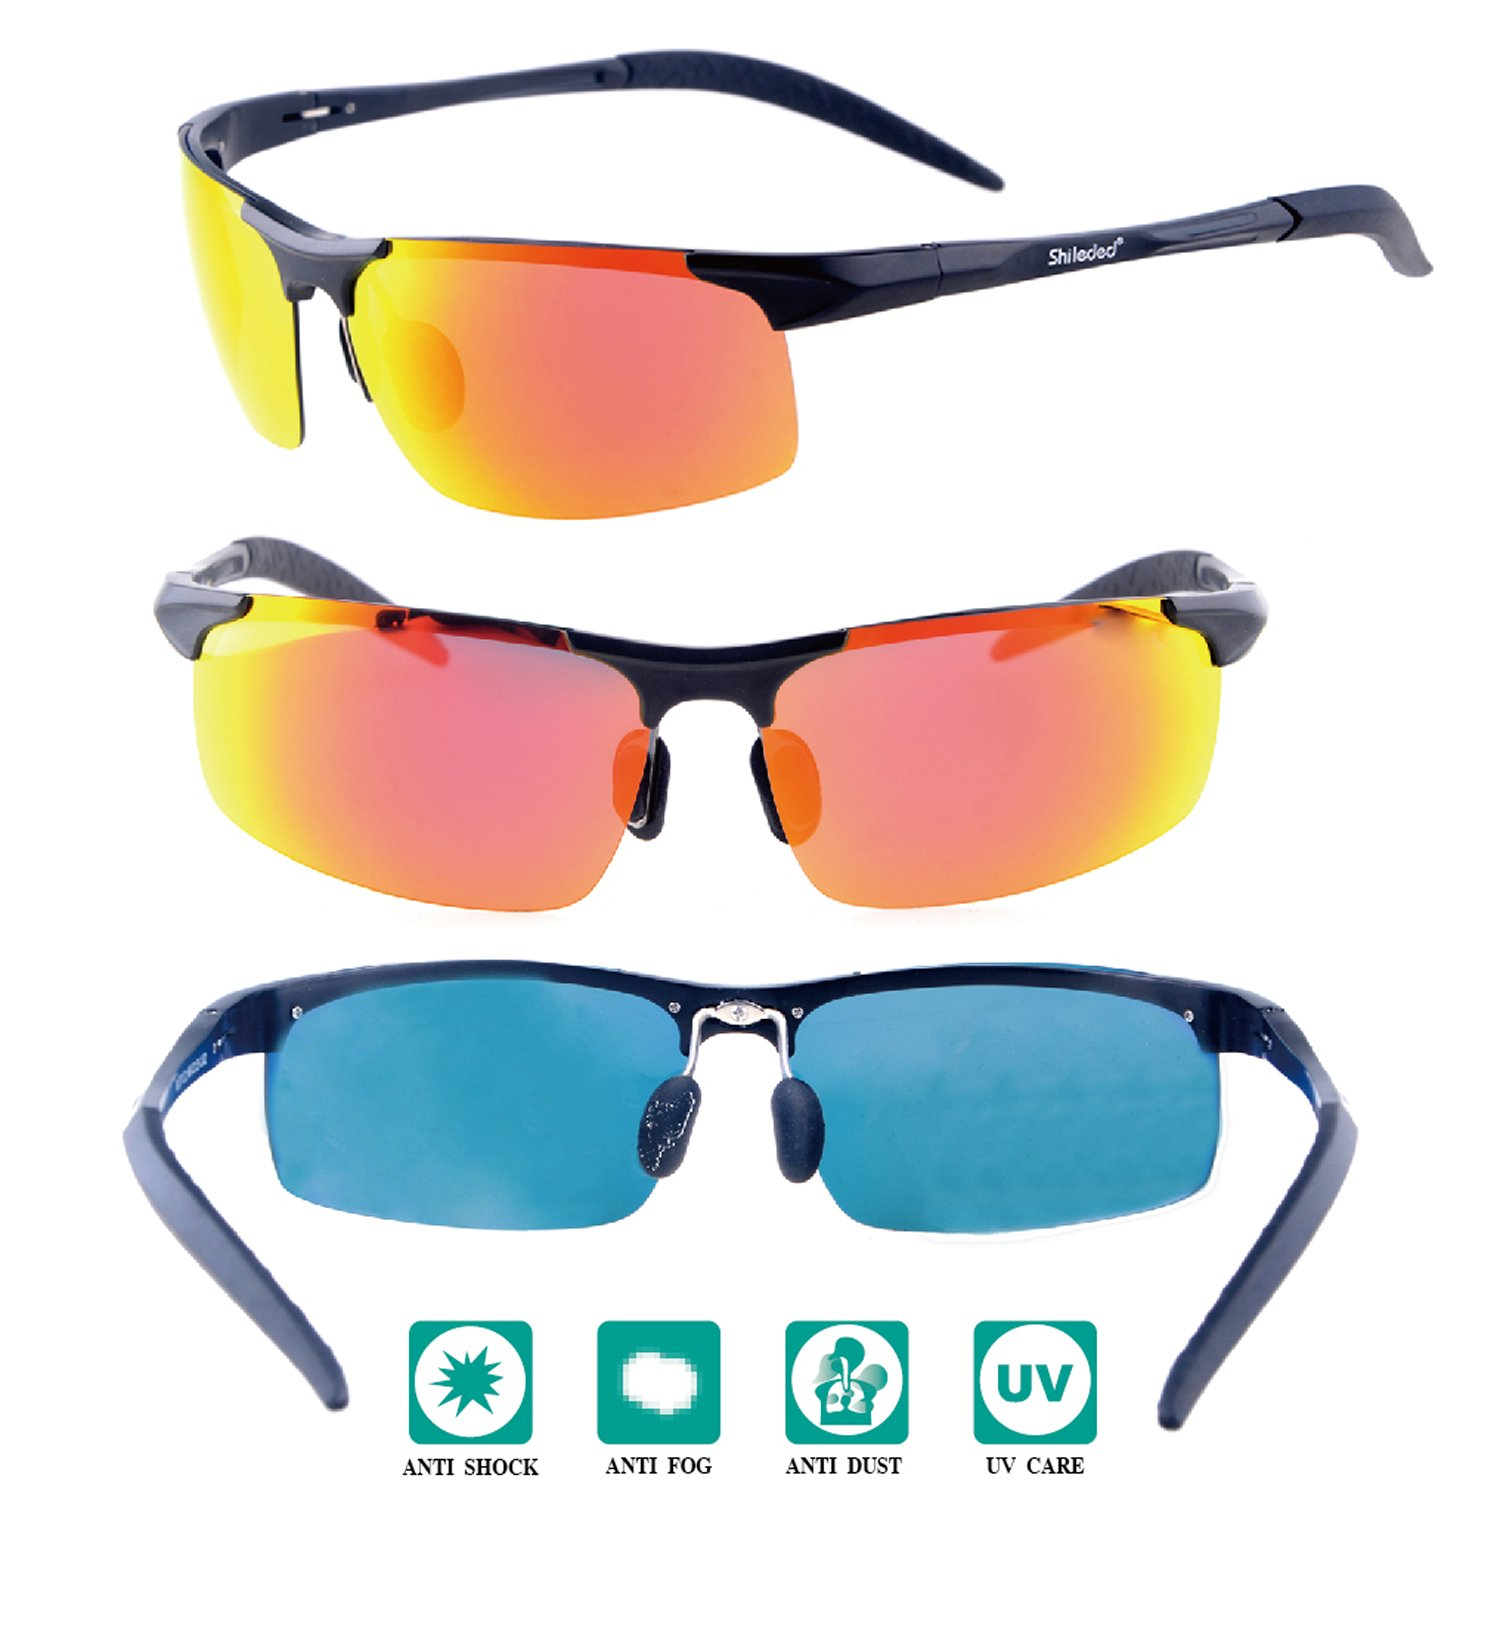 Sxacntg Cycling Glasses,Fishing Golf Glasses Polarized UV Protection Sunglasses,Sports Sunglasses High Grade for Outdoors Durable Frame for Men/Women/Boy/Girl by Sxacntg (Image #2)